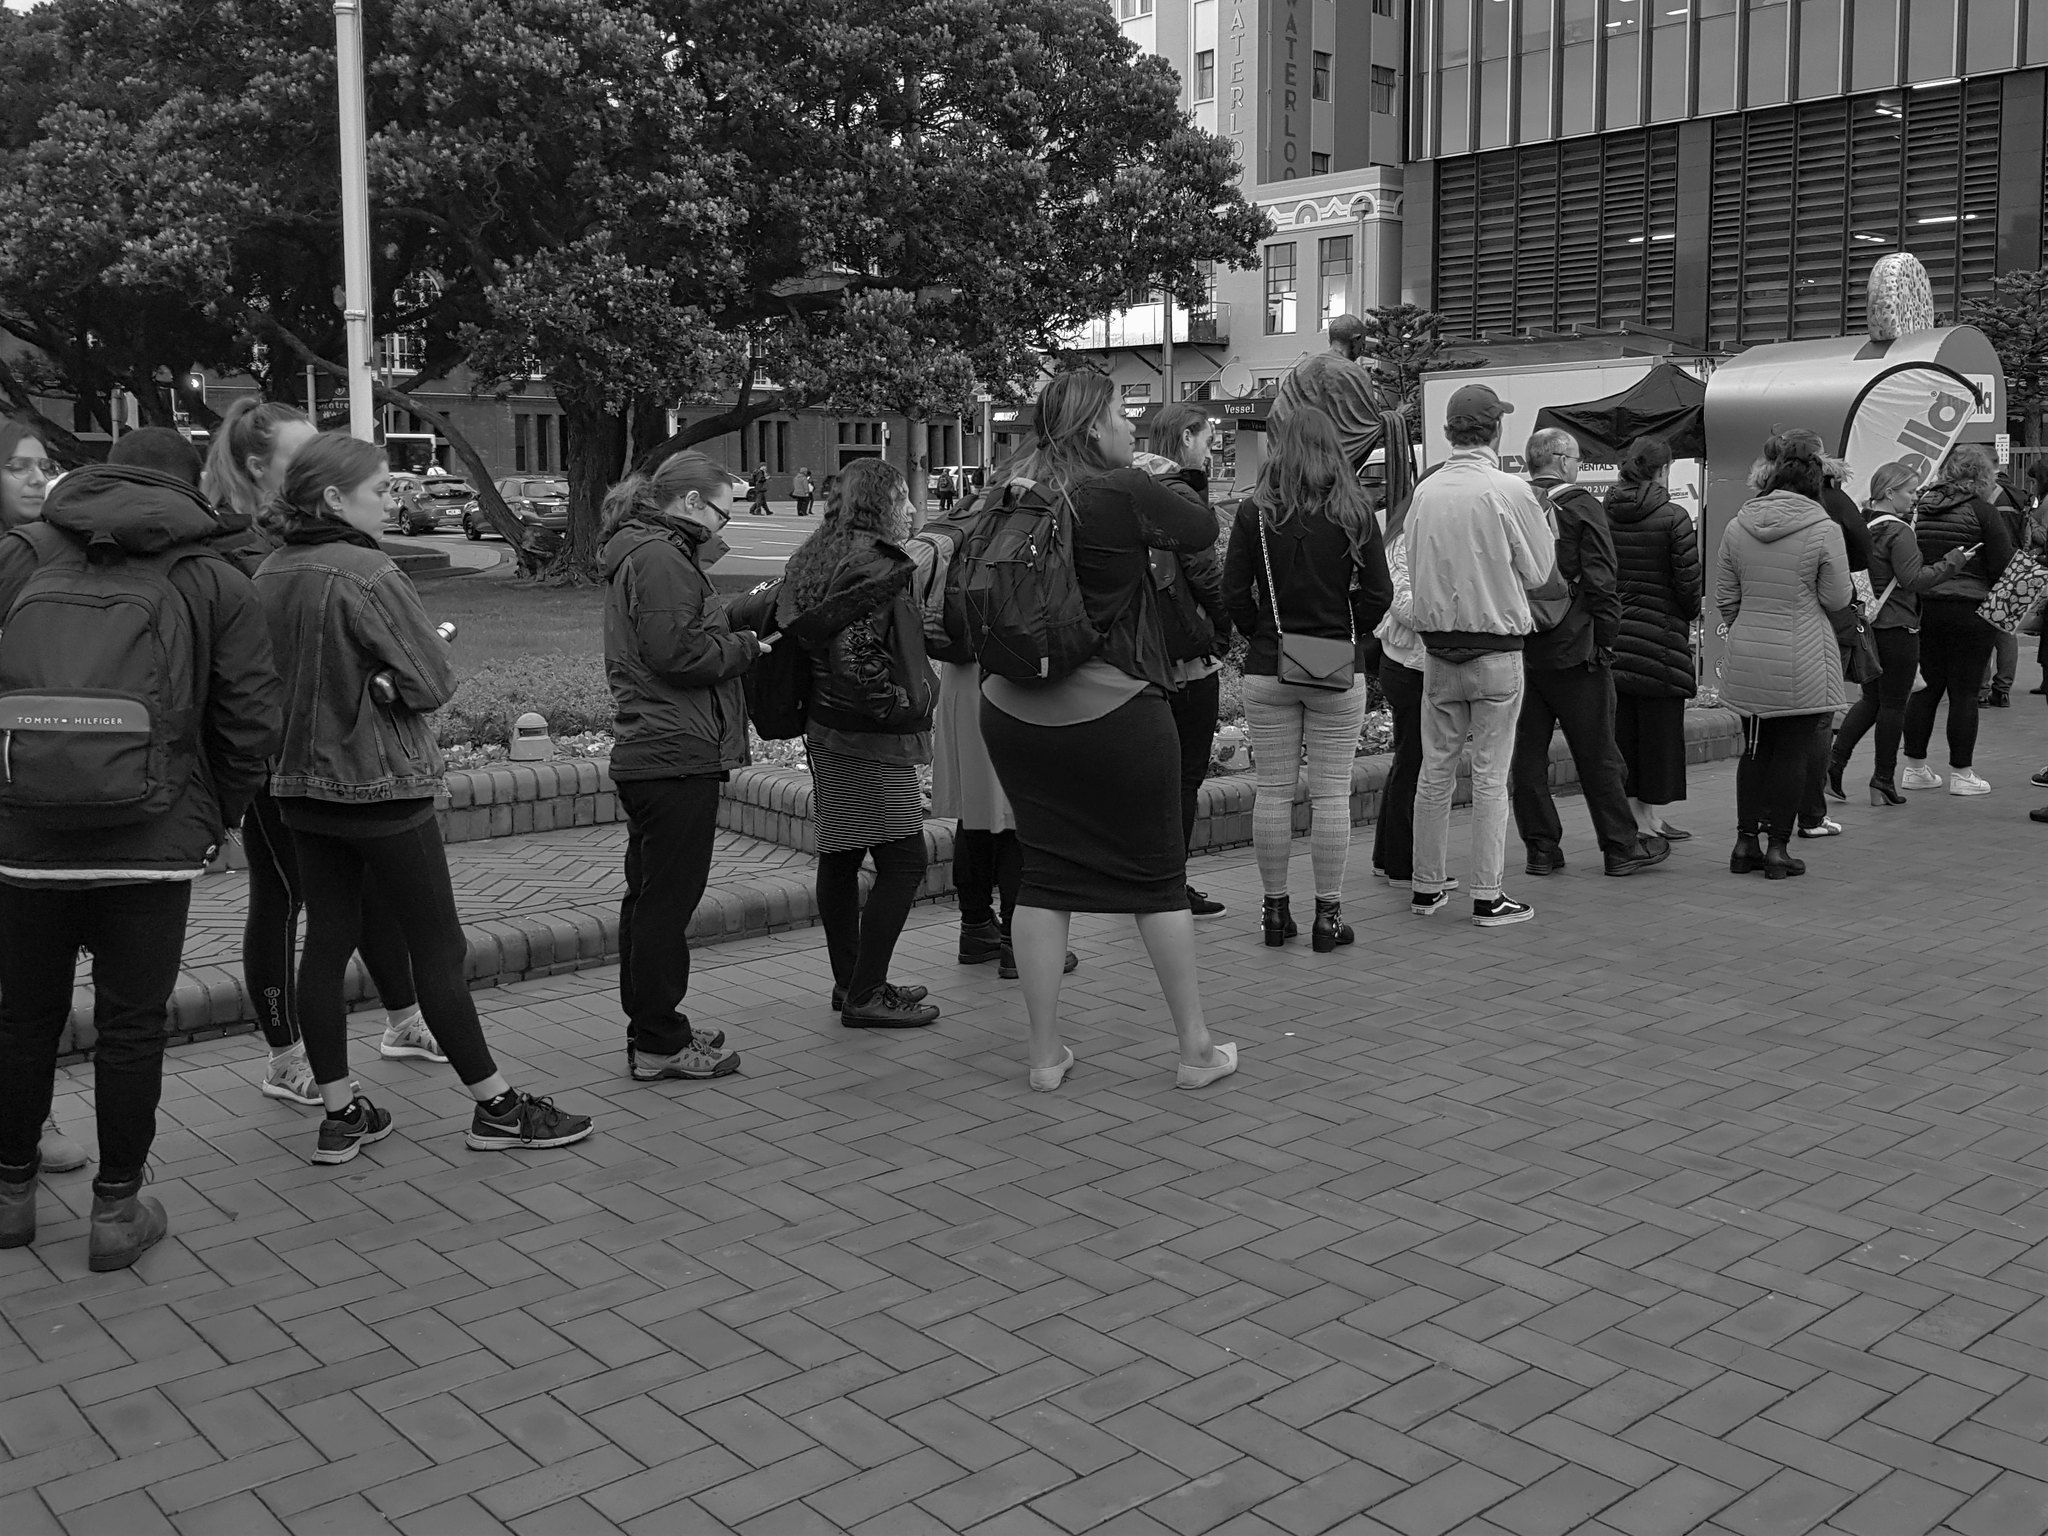 20180517_075215 (The queue)